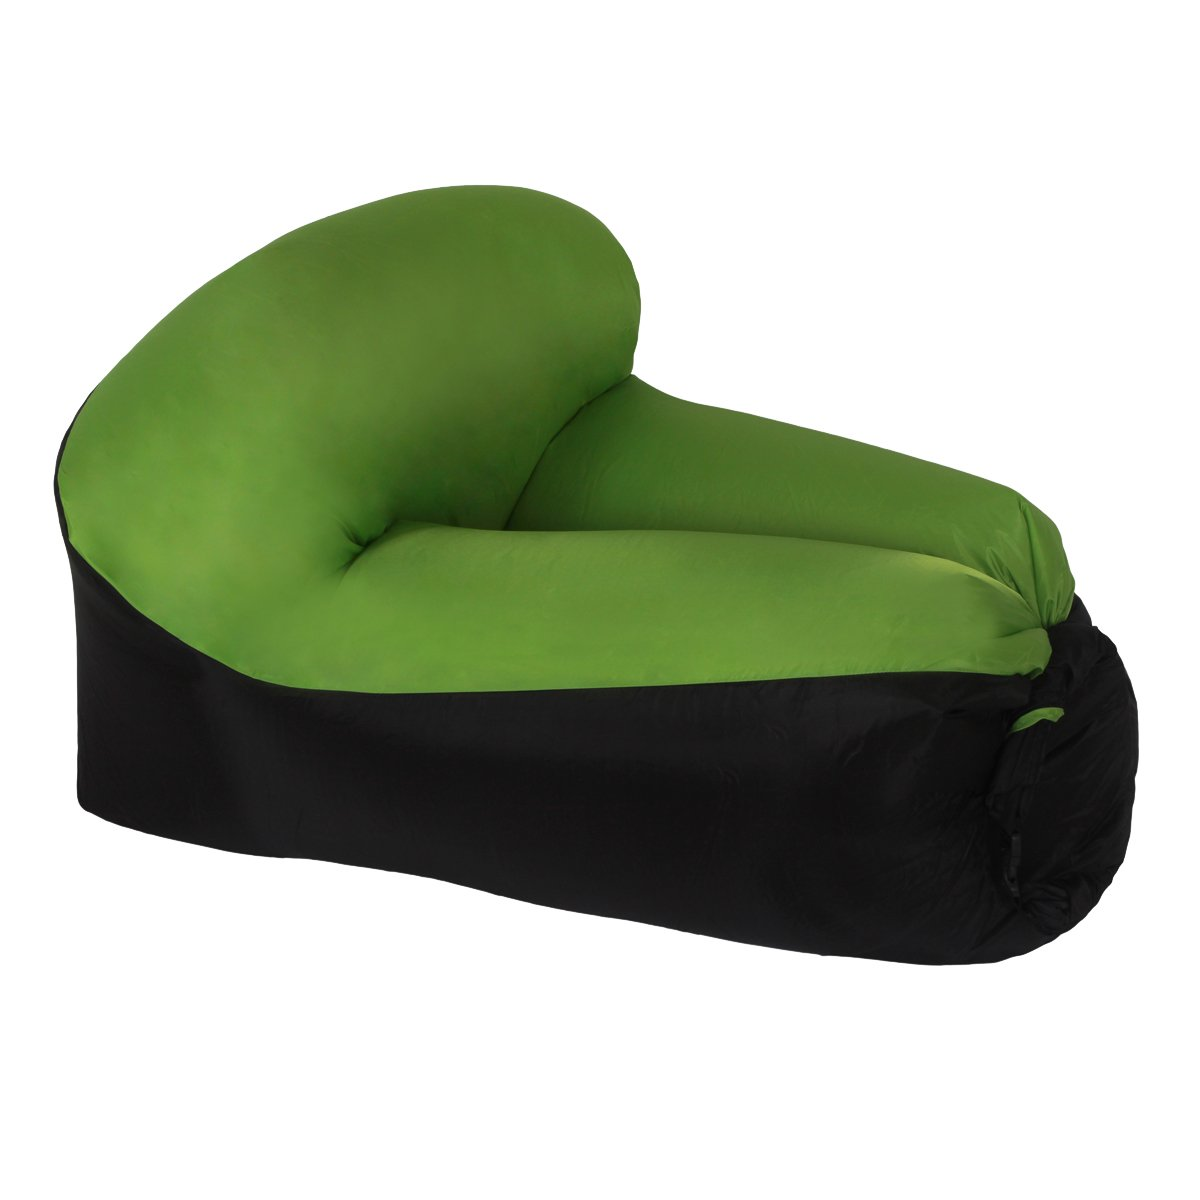 Inflatable Sofa Bed Flipkart: Air Sofa Chair